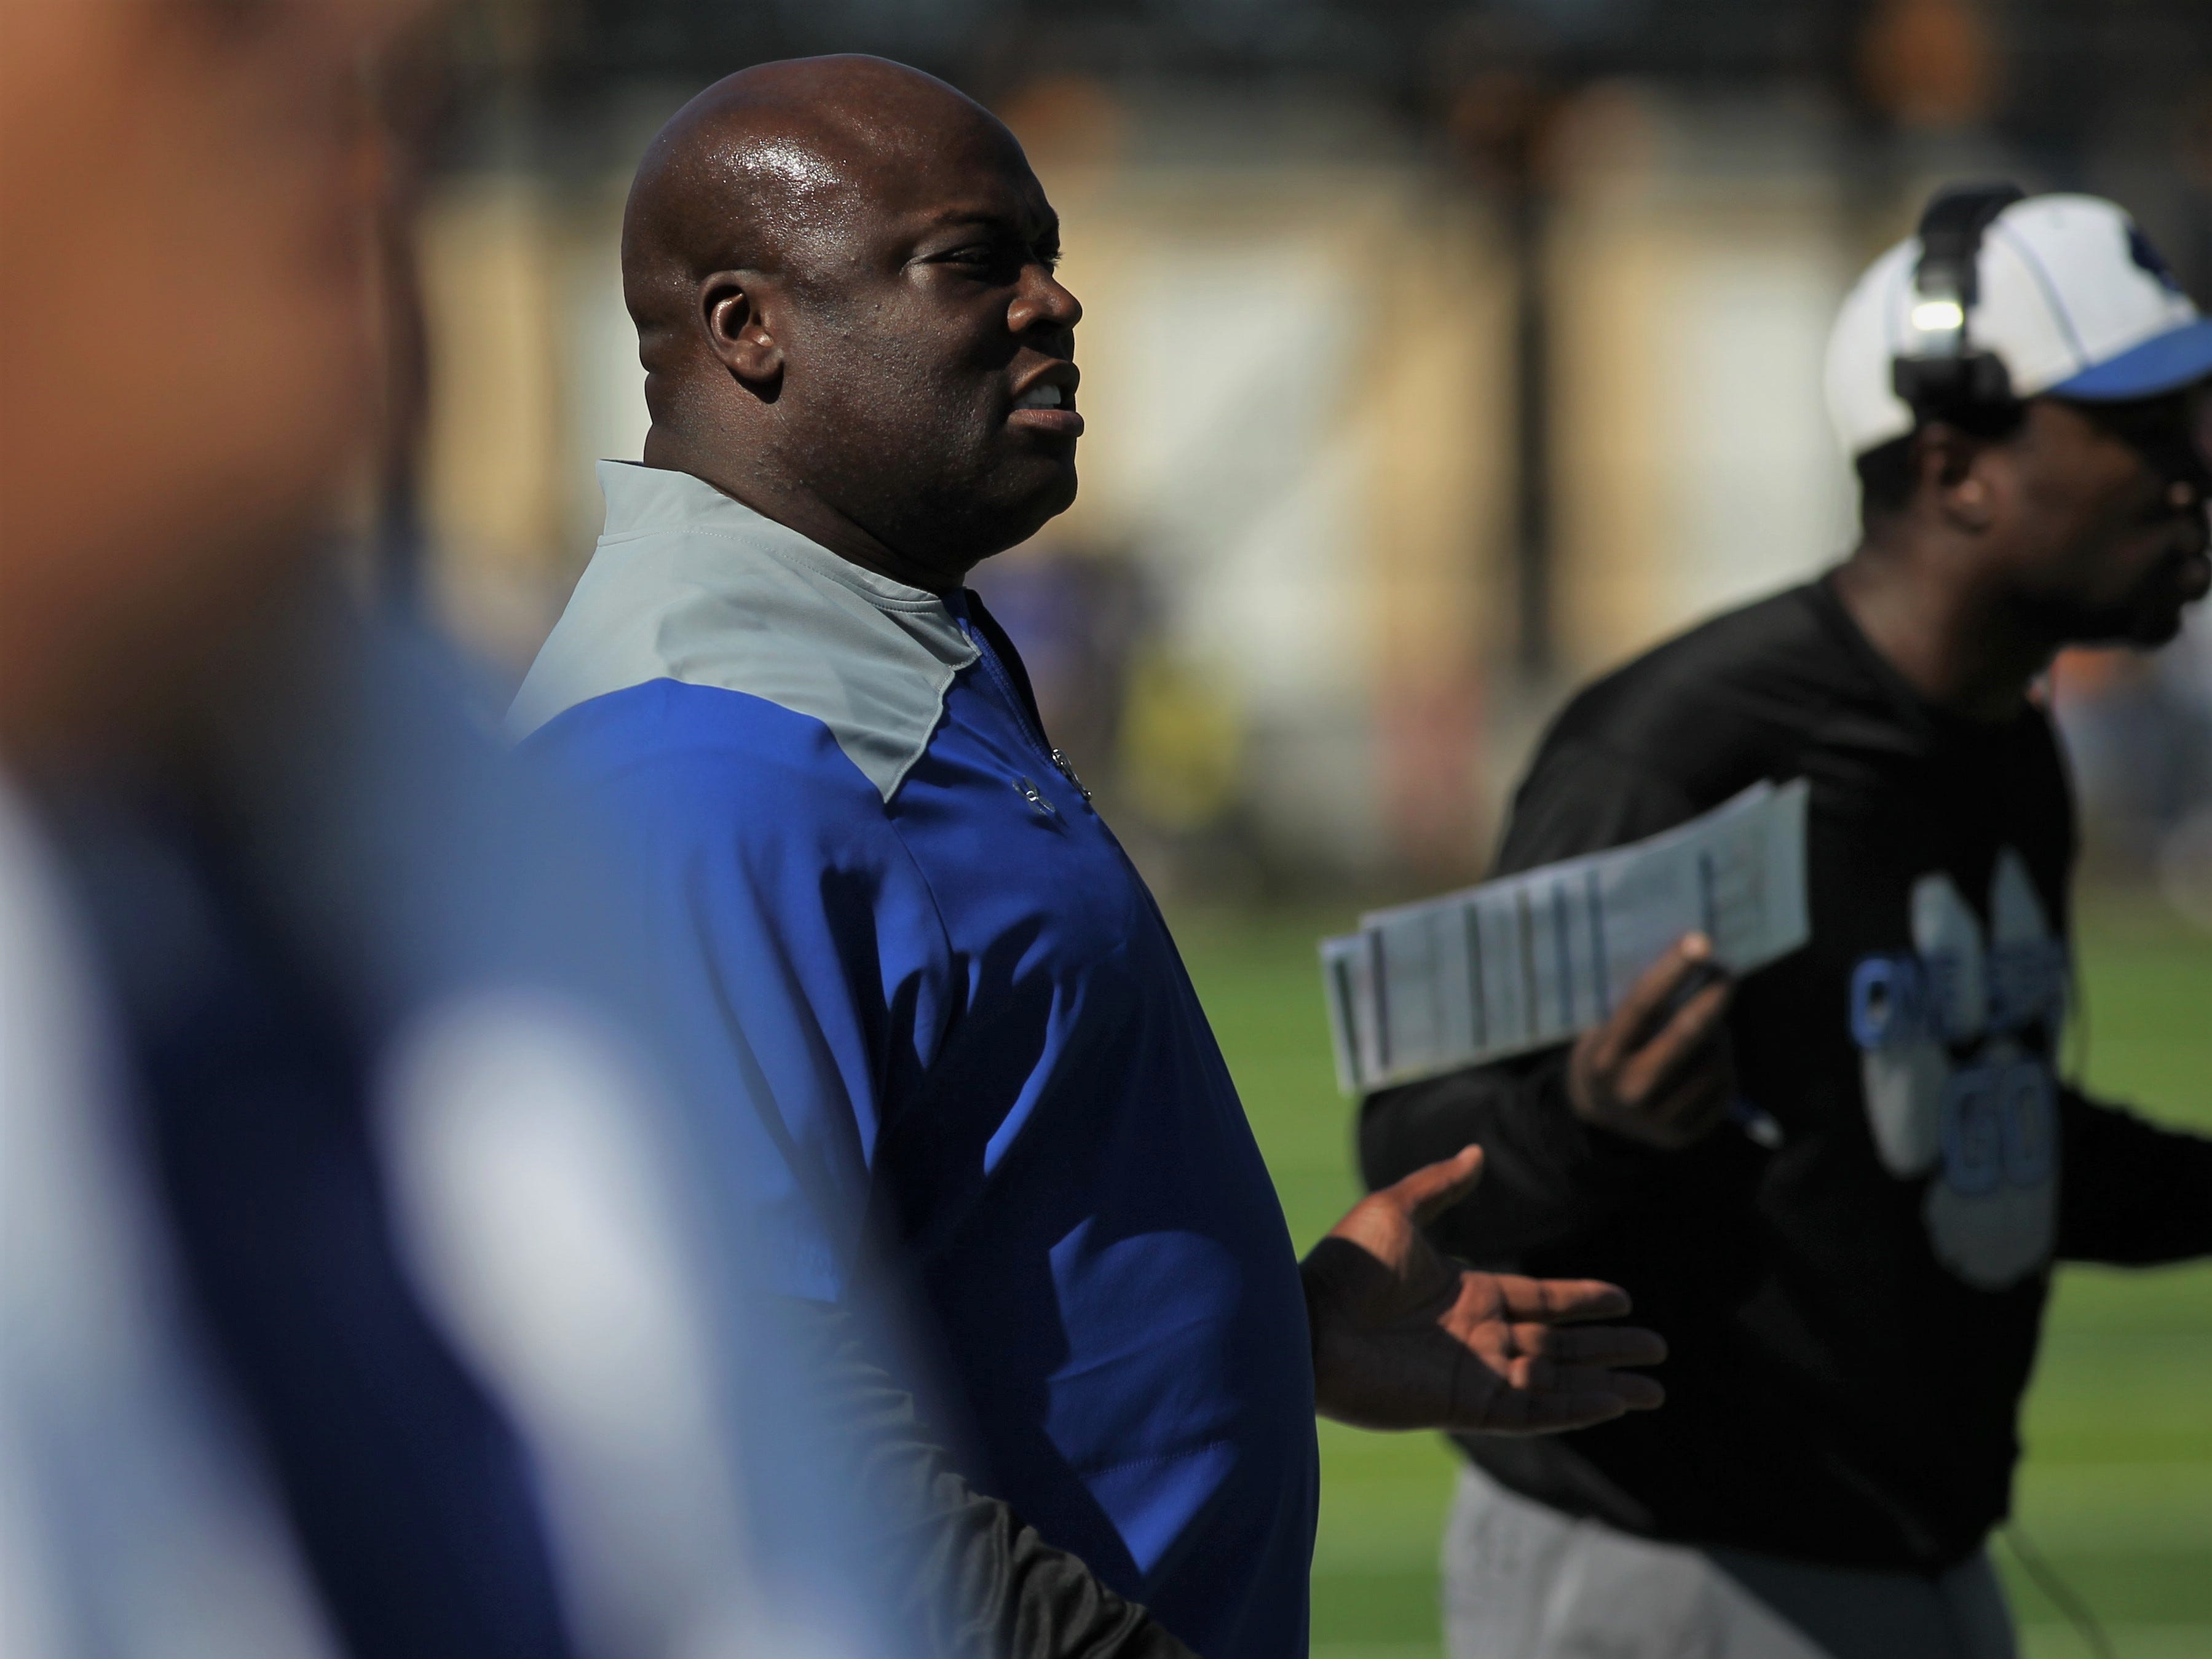 Godby football coach Corey Fuller watches angrily at referee calls during Saturday's game against Rickards.